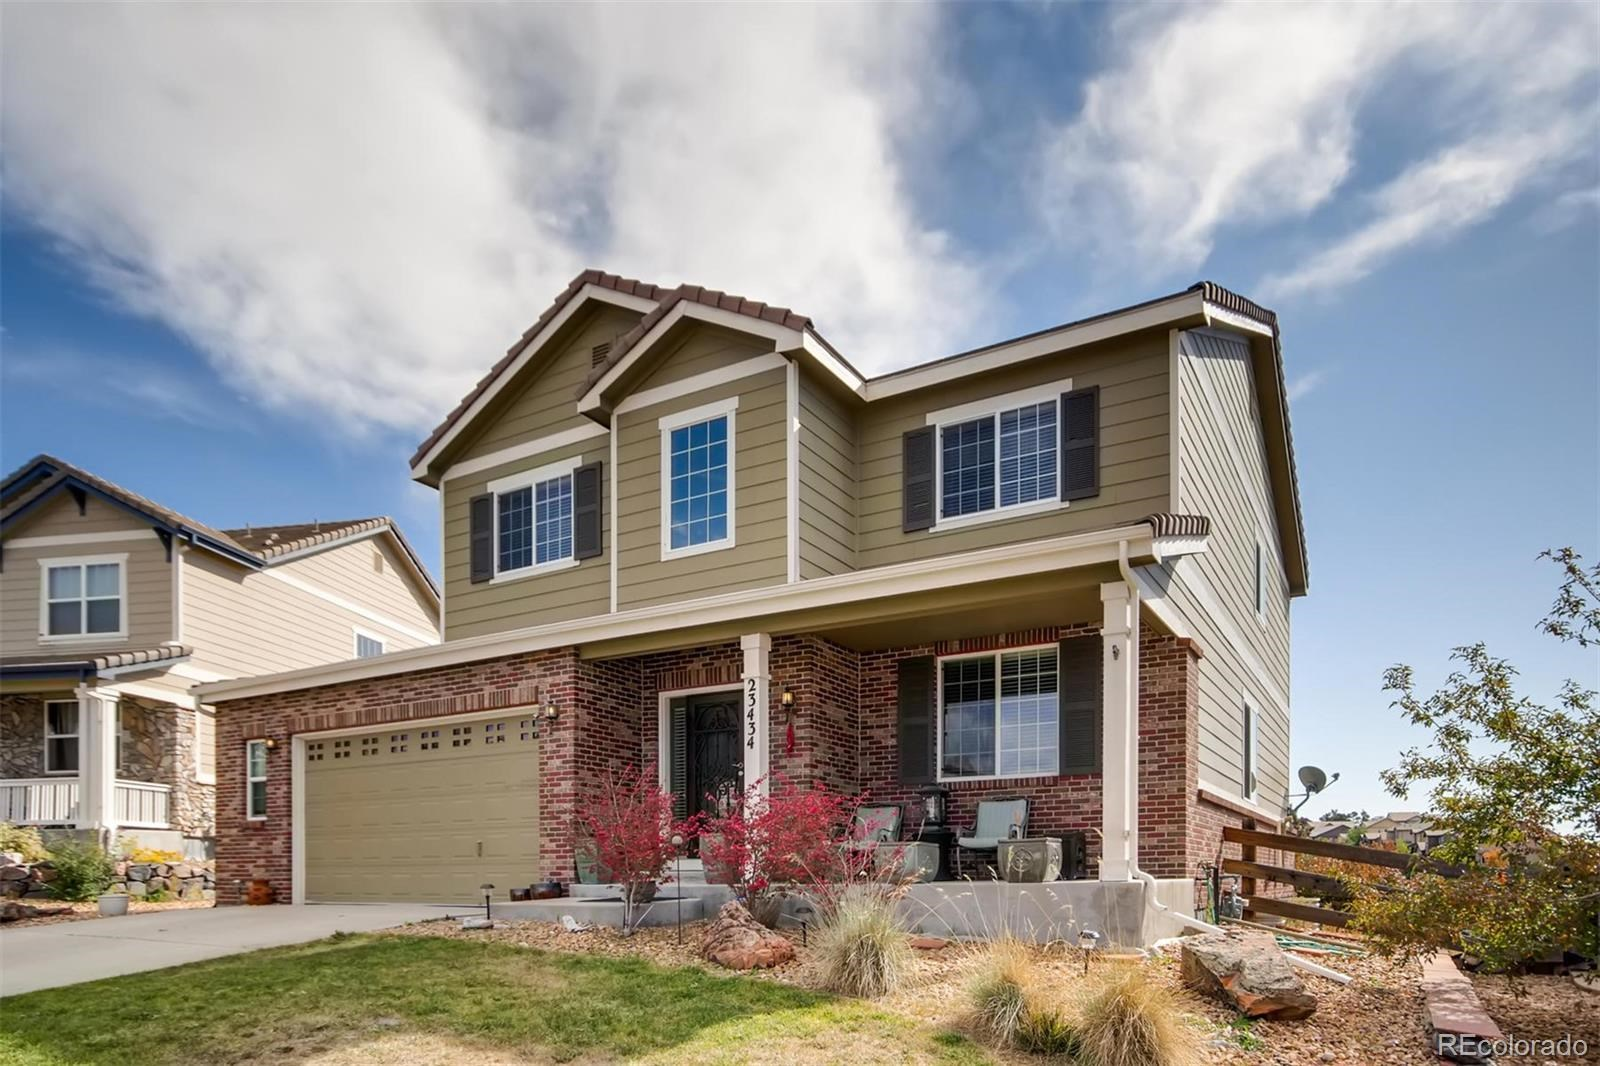 MLS# 9982996 - 1 - 23434 E Ontario Place, Aurora, CO 80016